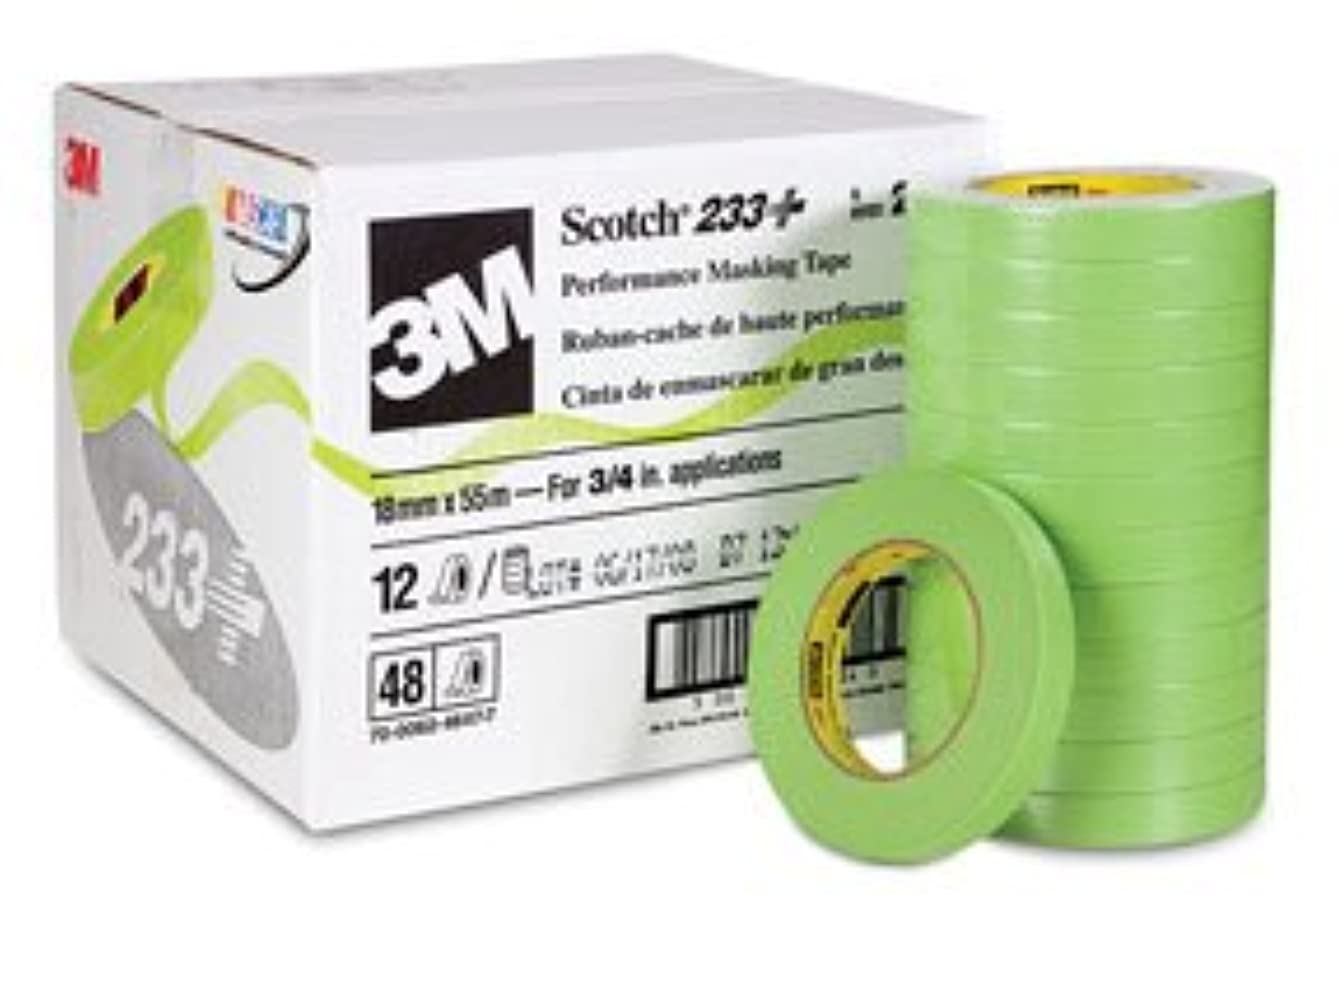 3M 26334 Crl 3M 3/4 Inch Automotive Performance Paint Masking Tape, Green